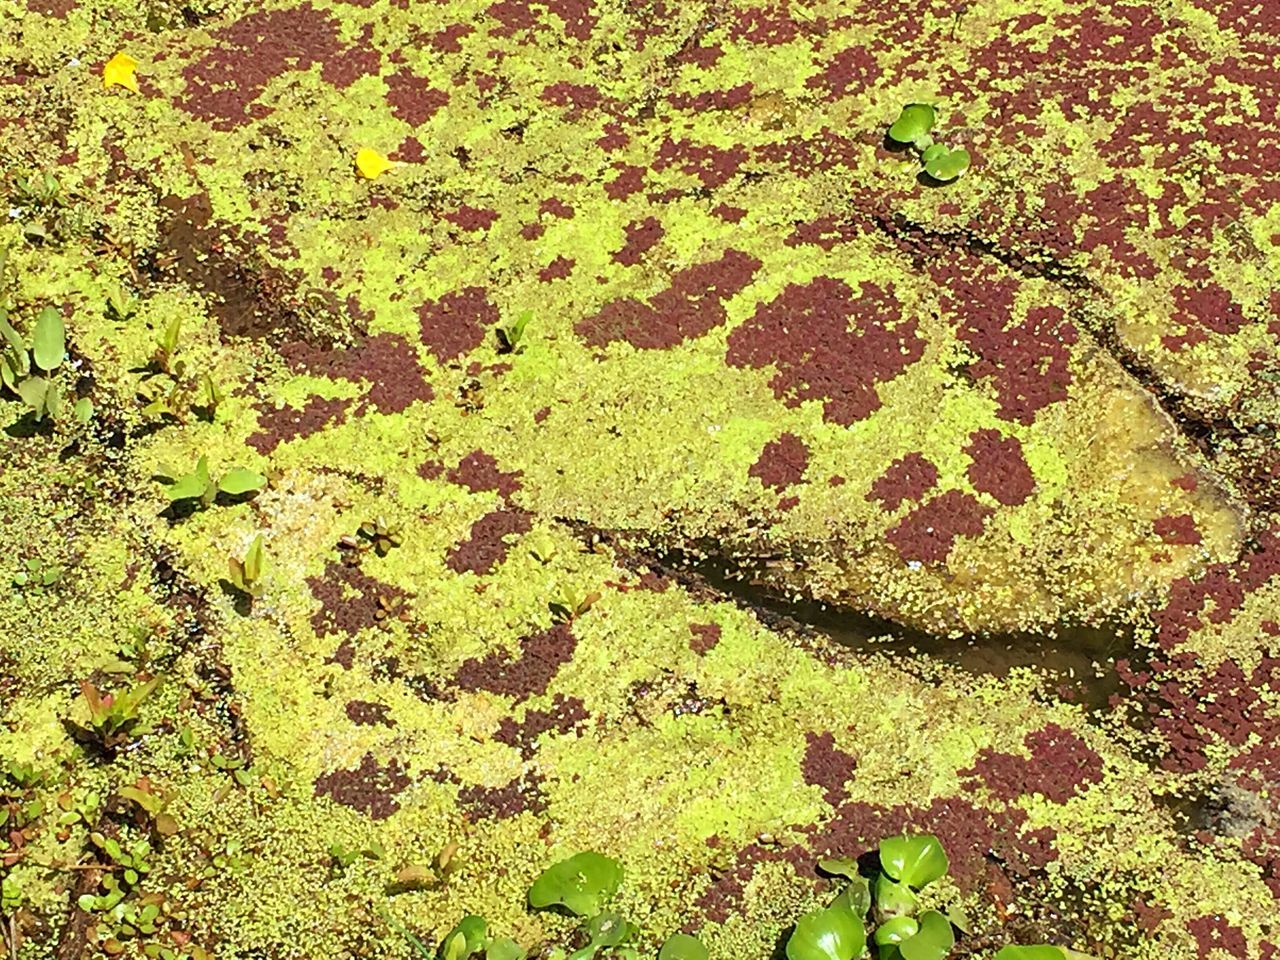 Algae with growing plants Full Frame Backgrounds Green Color Textured  Close-up No People Pattern Leaf Day Outdoors Nature Growth Ink